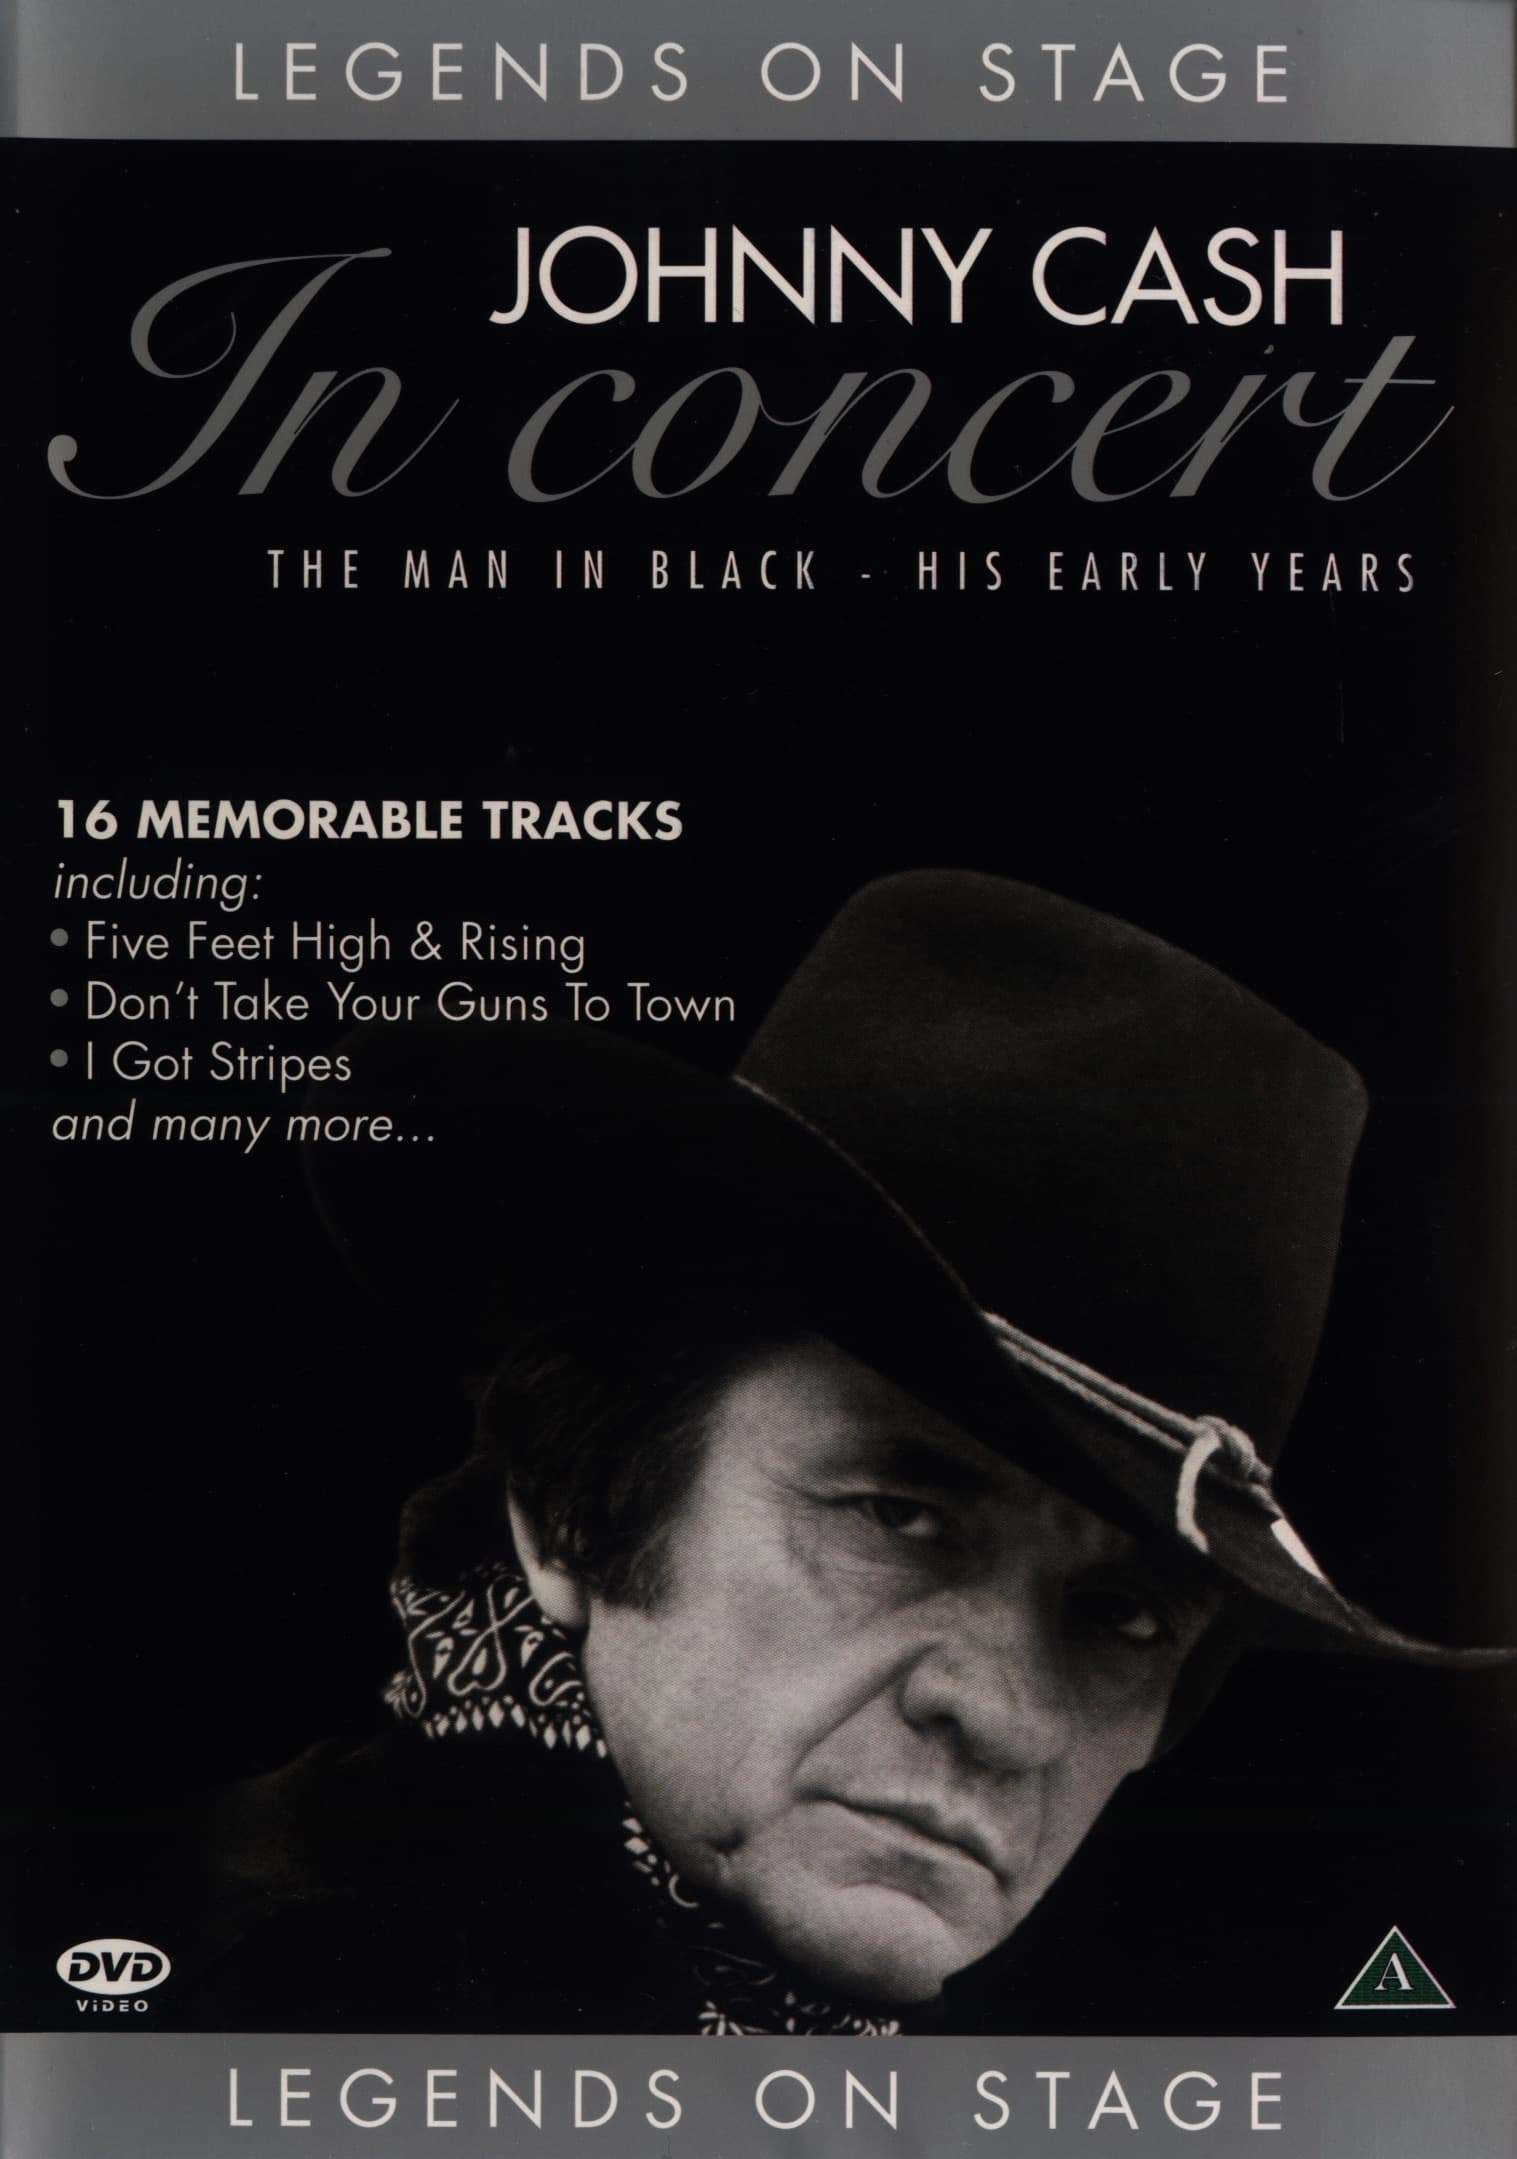 Johnny Cash: The Man in Black - His Early Years (2005)